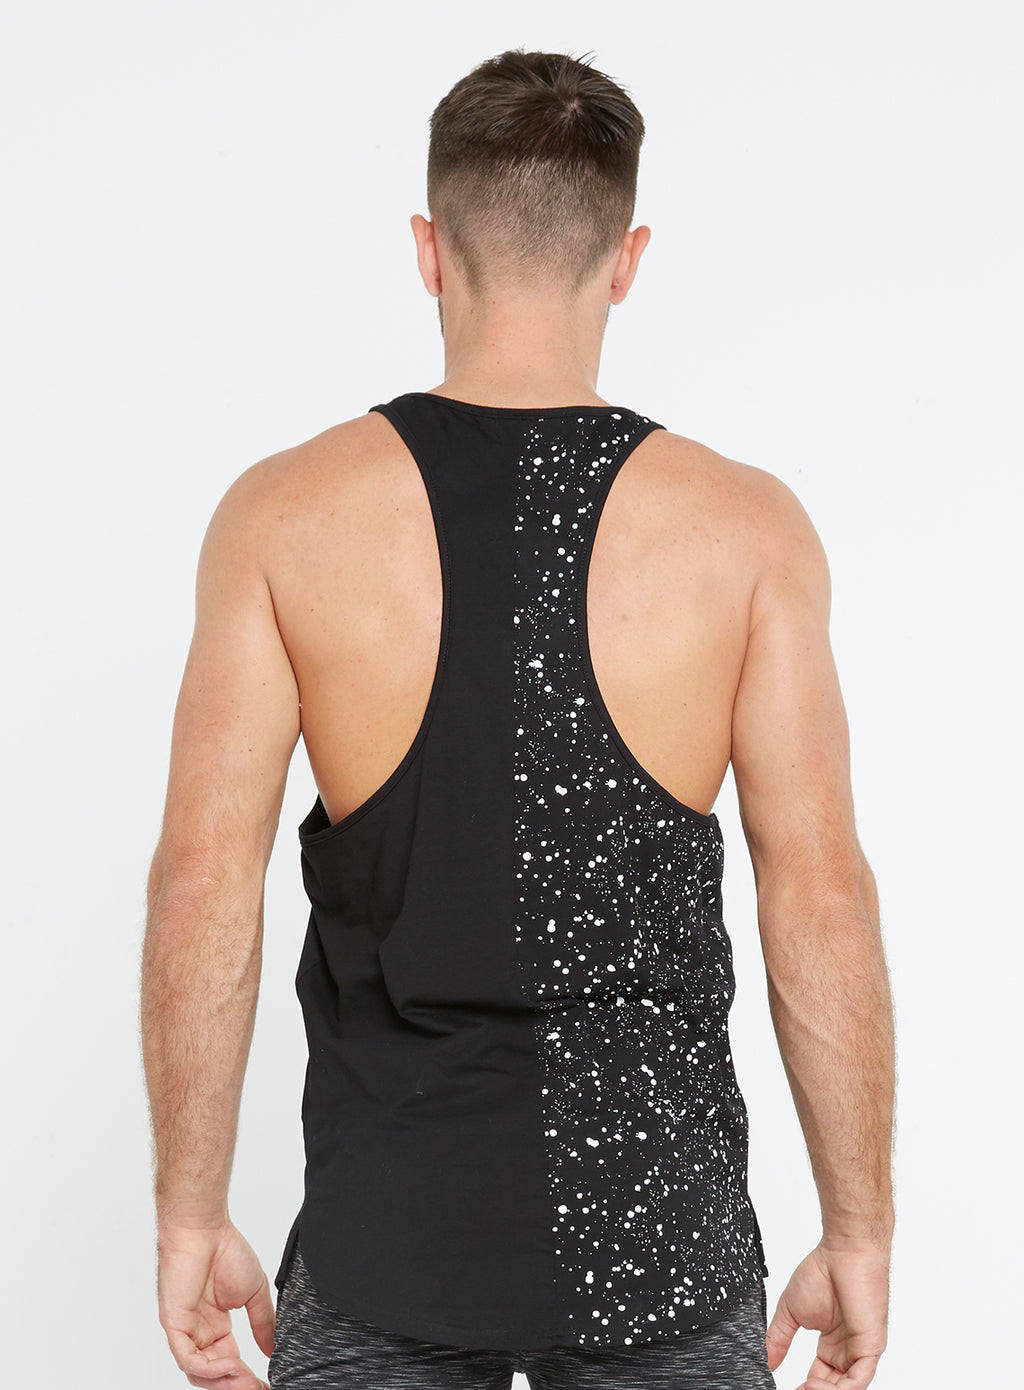 Gym Monkee - Black Speckled Vest REAR